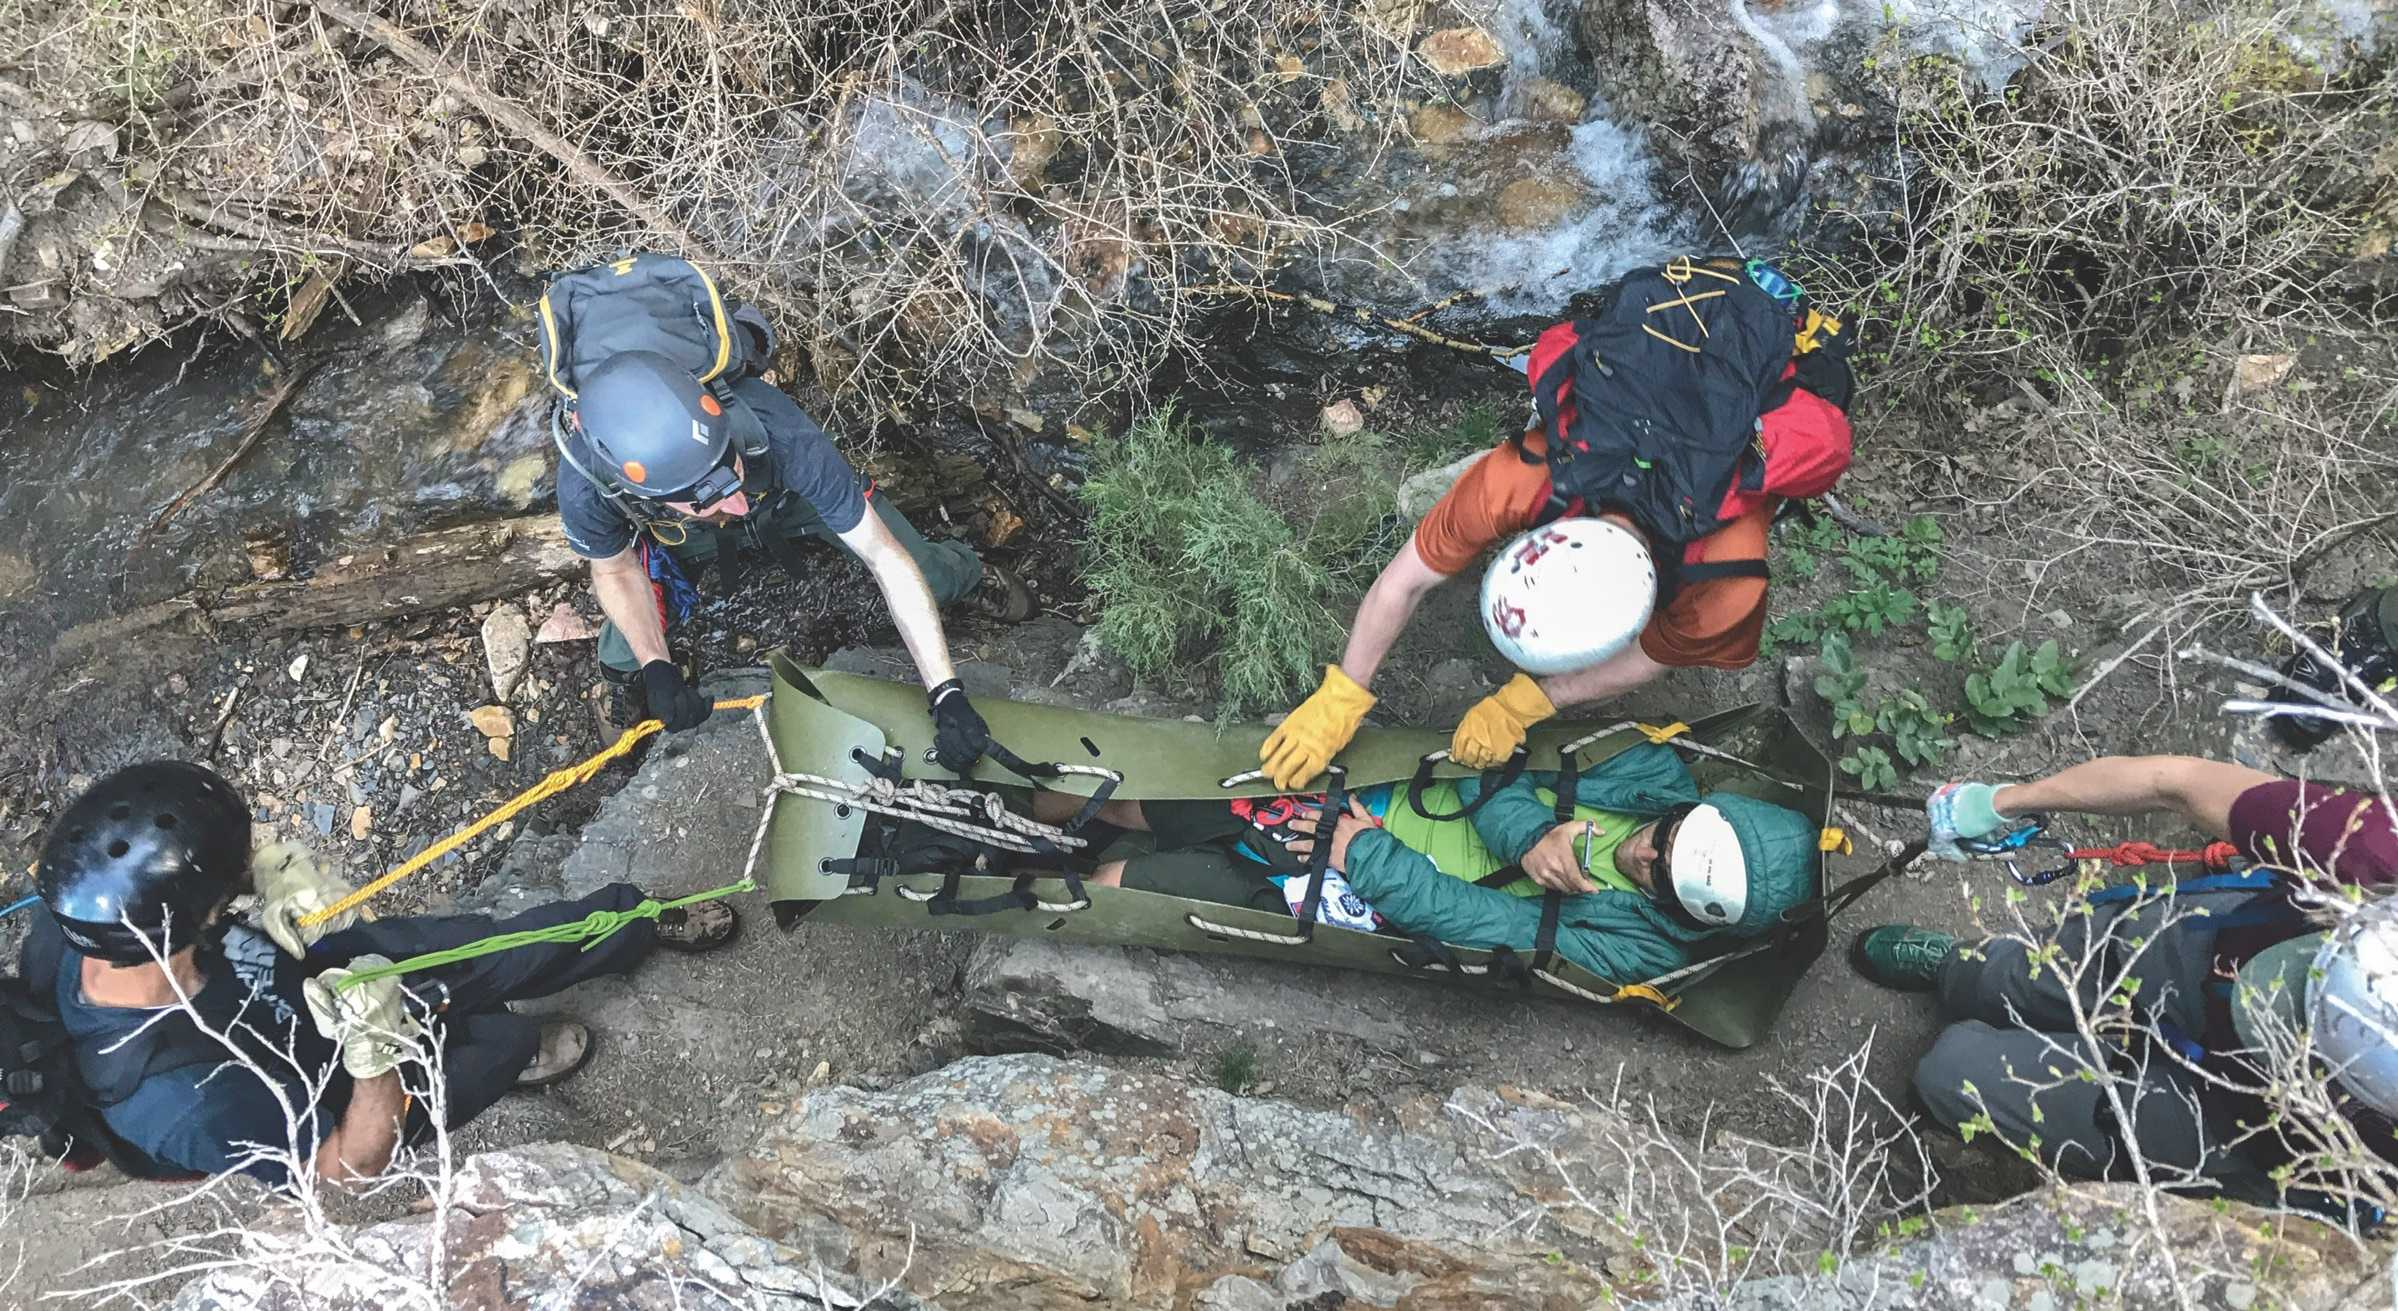 A Salt Lake County search and rescue training exercise; often times, the victim must be carried out of hard to navigate terrain